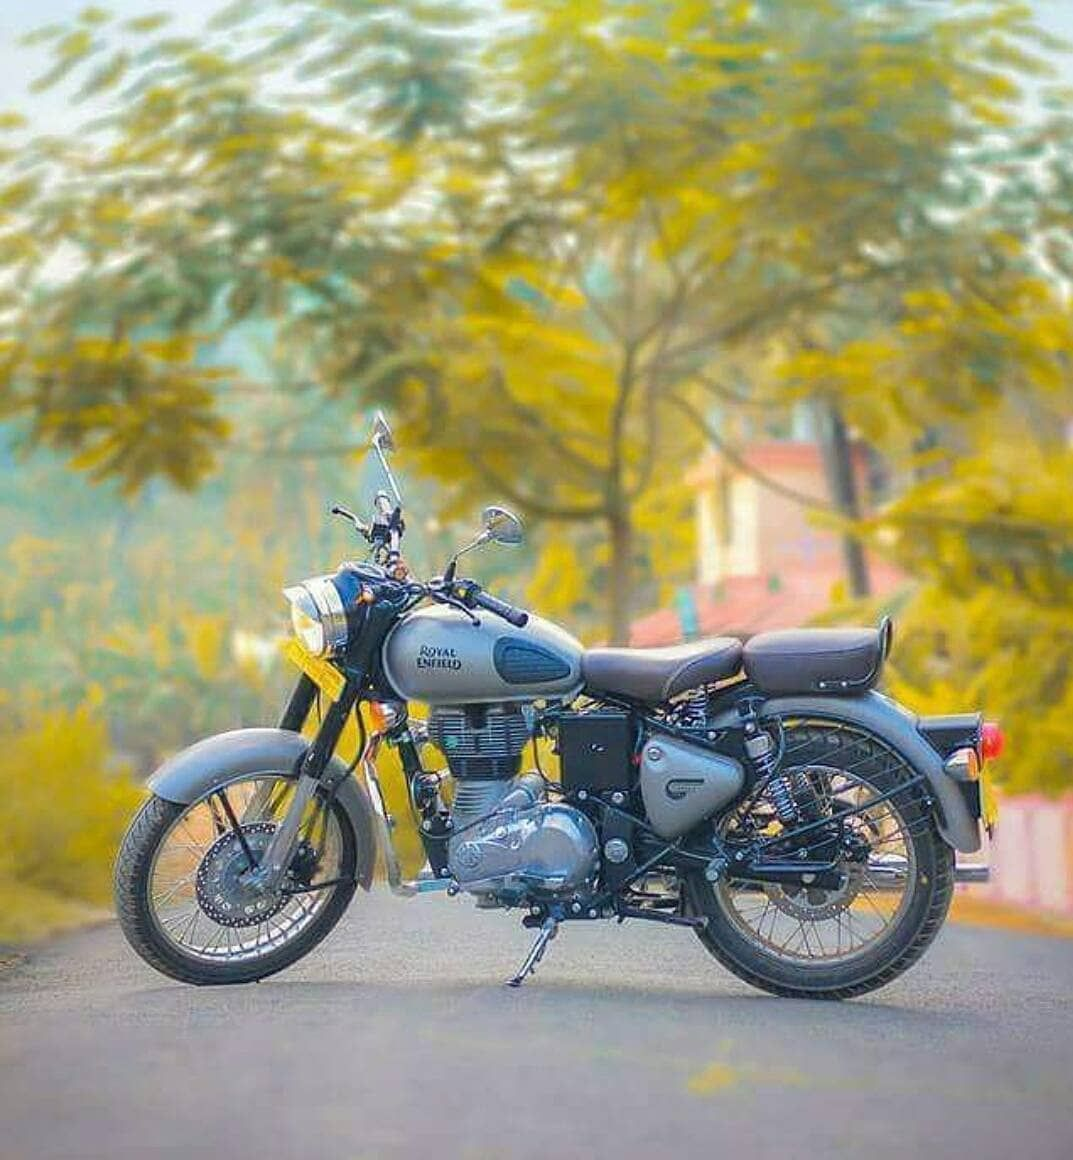 For More Amazing Posts Of Royal Enfield Follow This Page Royalenfieldofficial Roya Best Photo Background New Background Images Blurred Background Photography Full hd picsart royal cb background hd